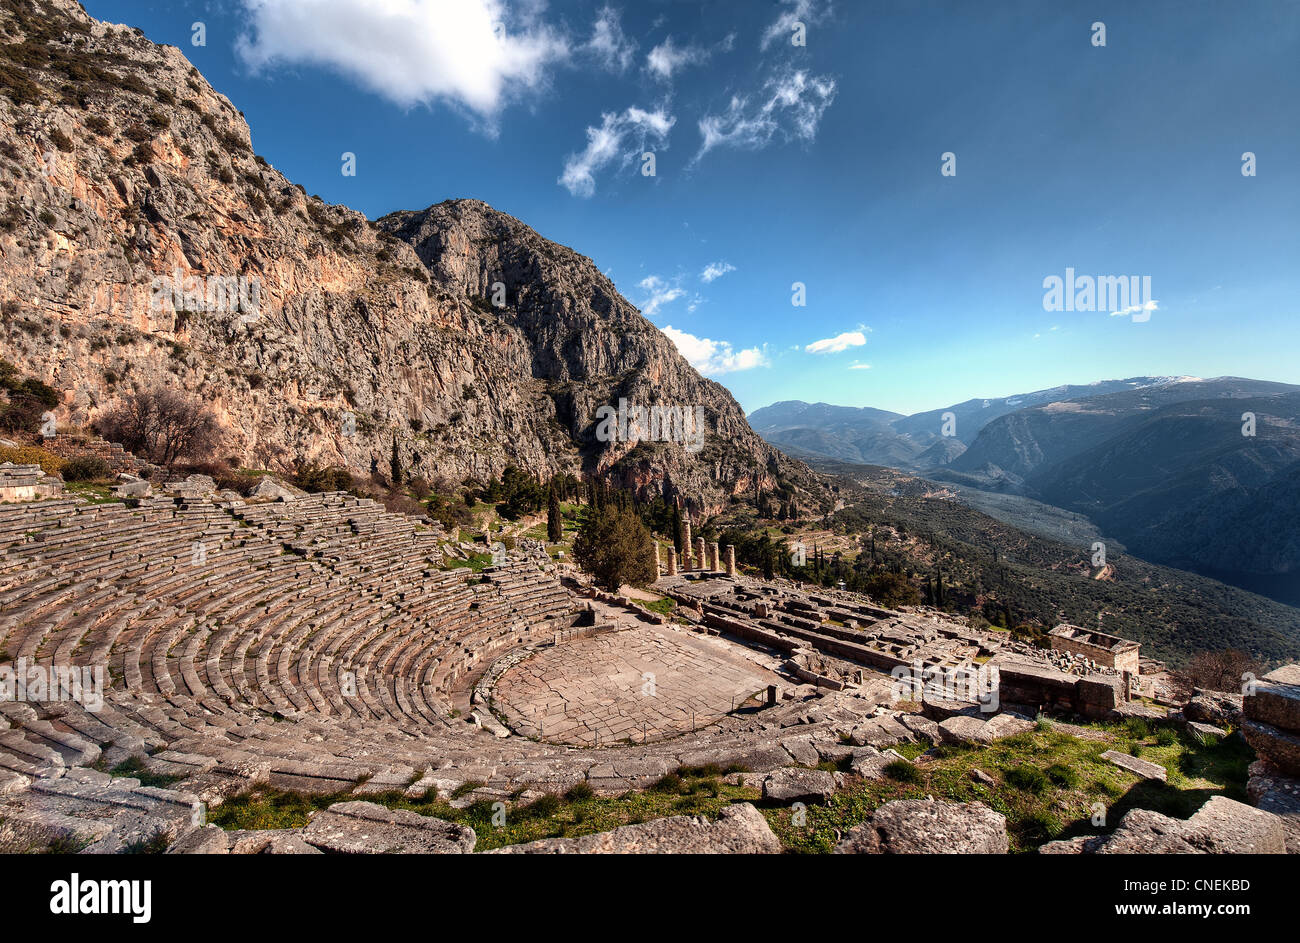 The 2,500 year-old open-air theater at the ancient Greek site of Delphi, Greece. Stock Photo